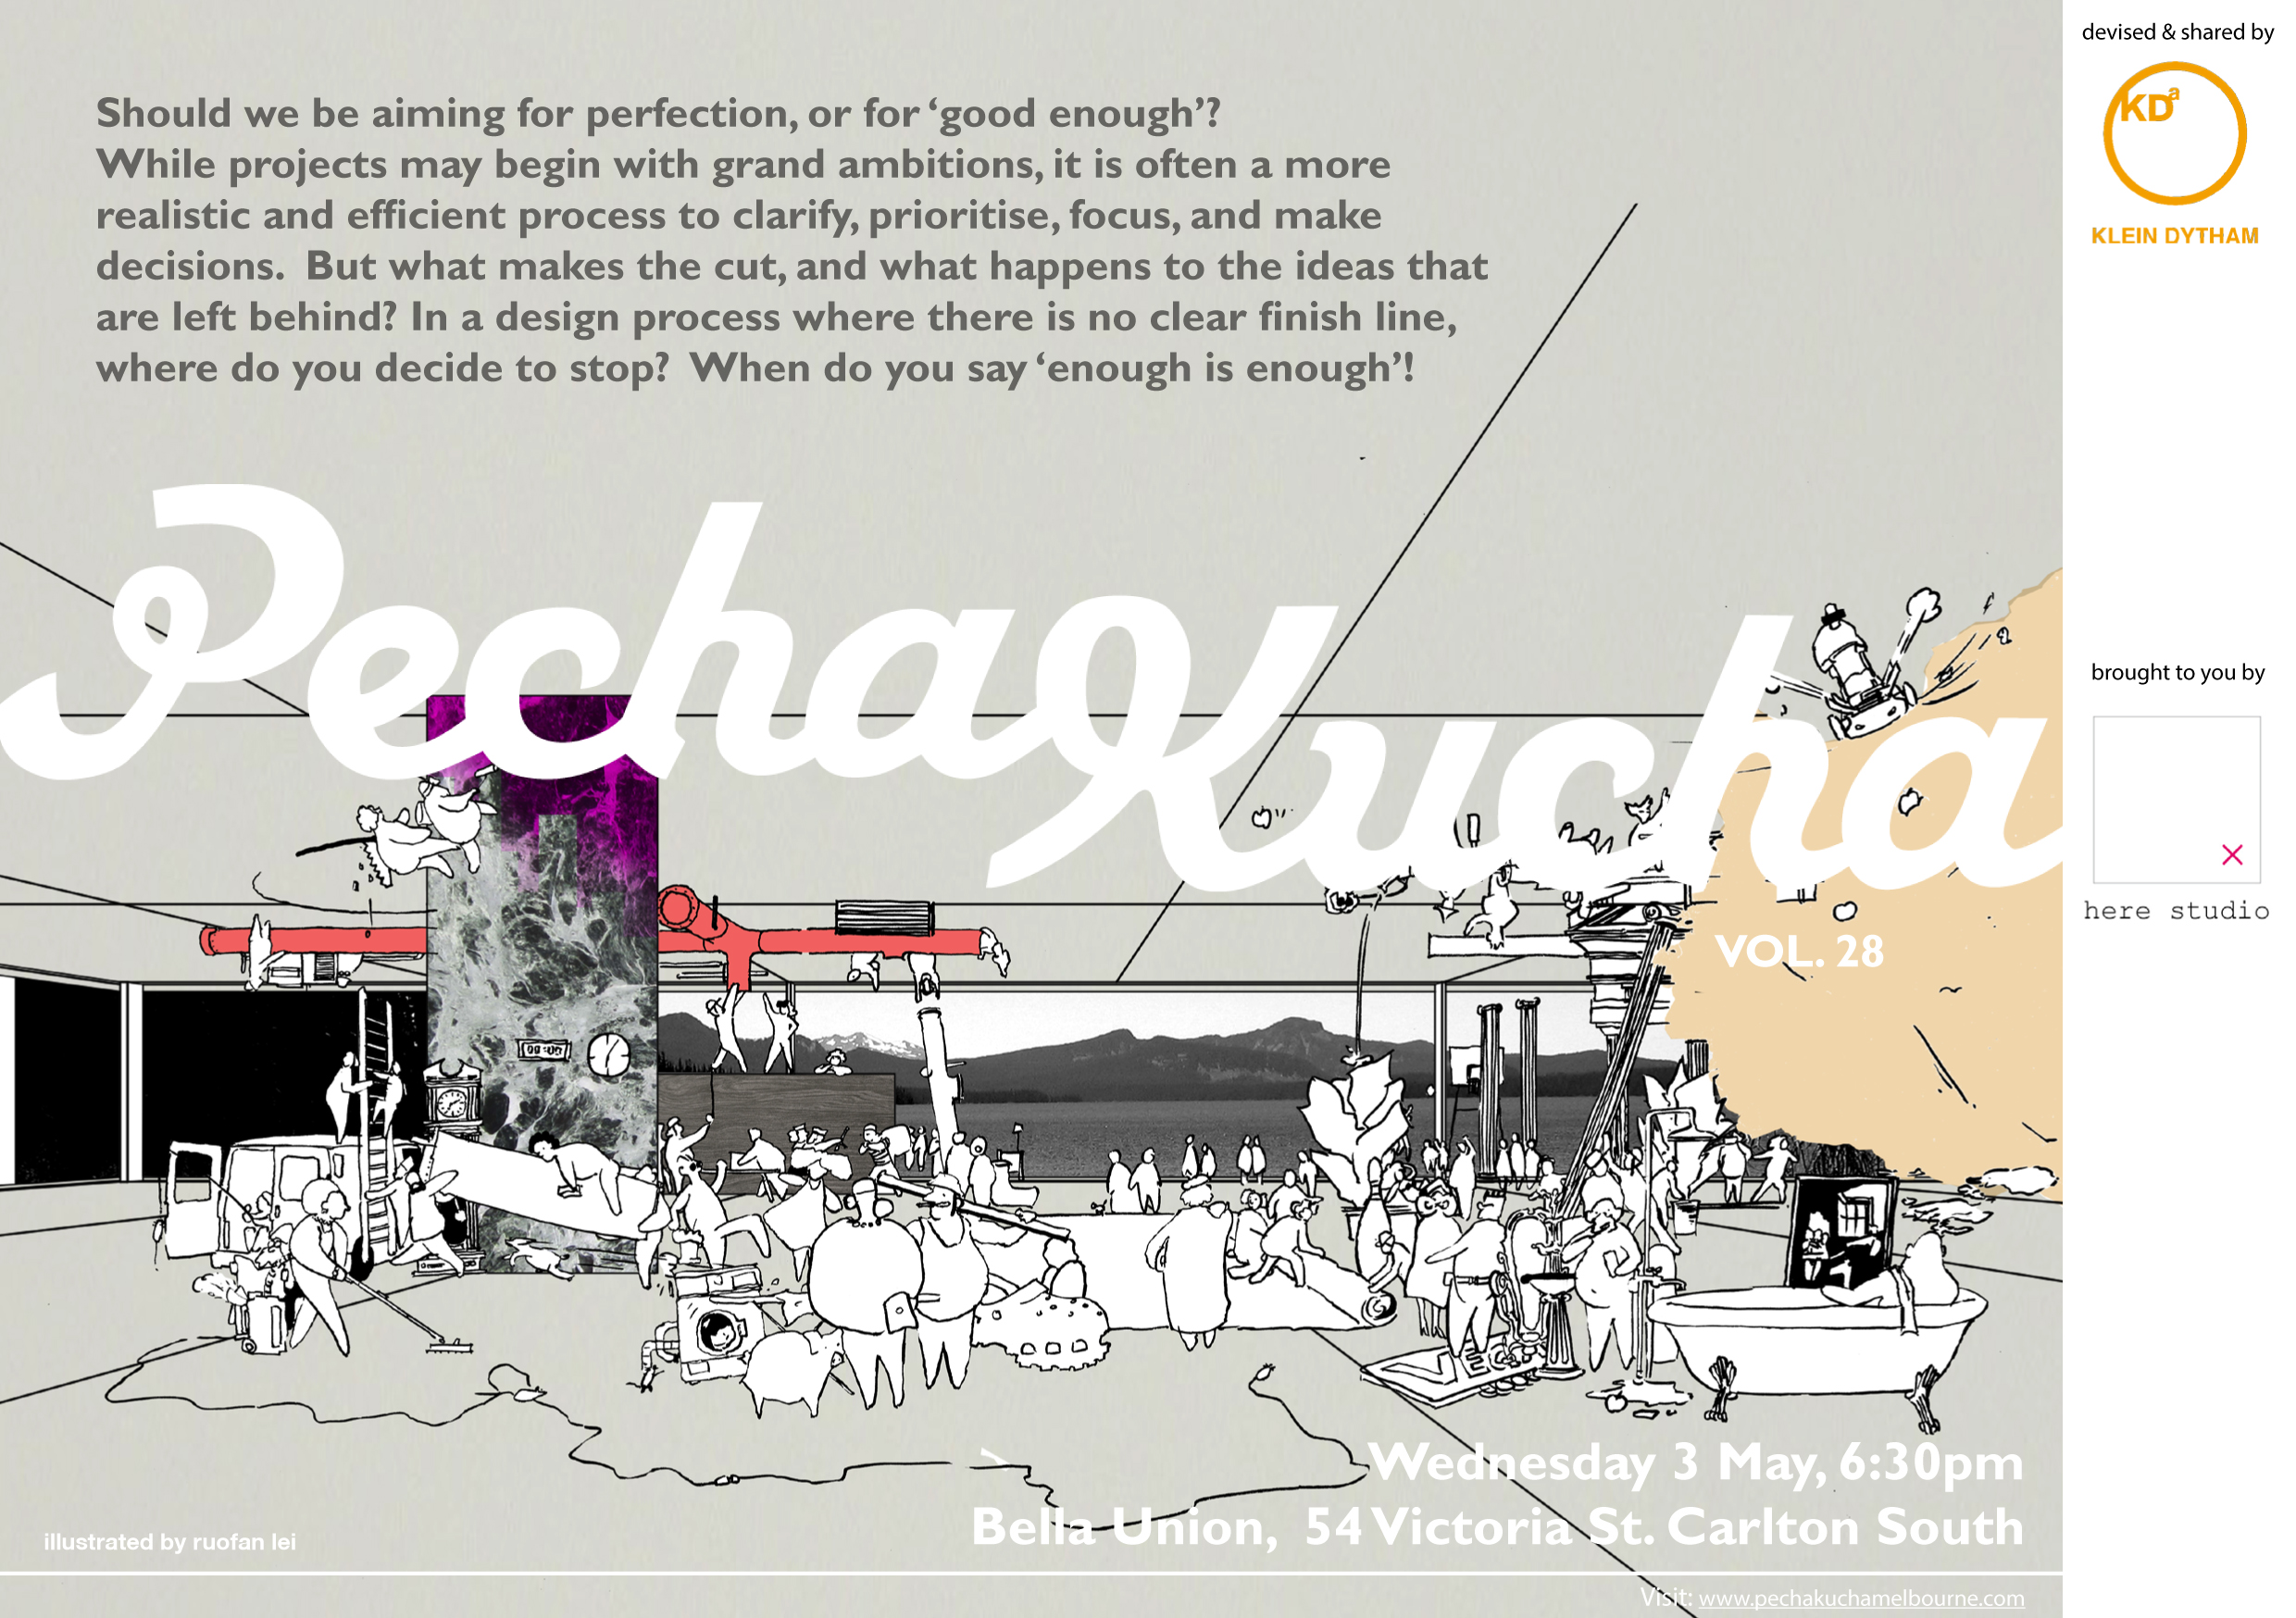 PechaKucha Melbourne Architect and Designers vol28